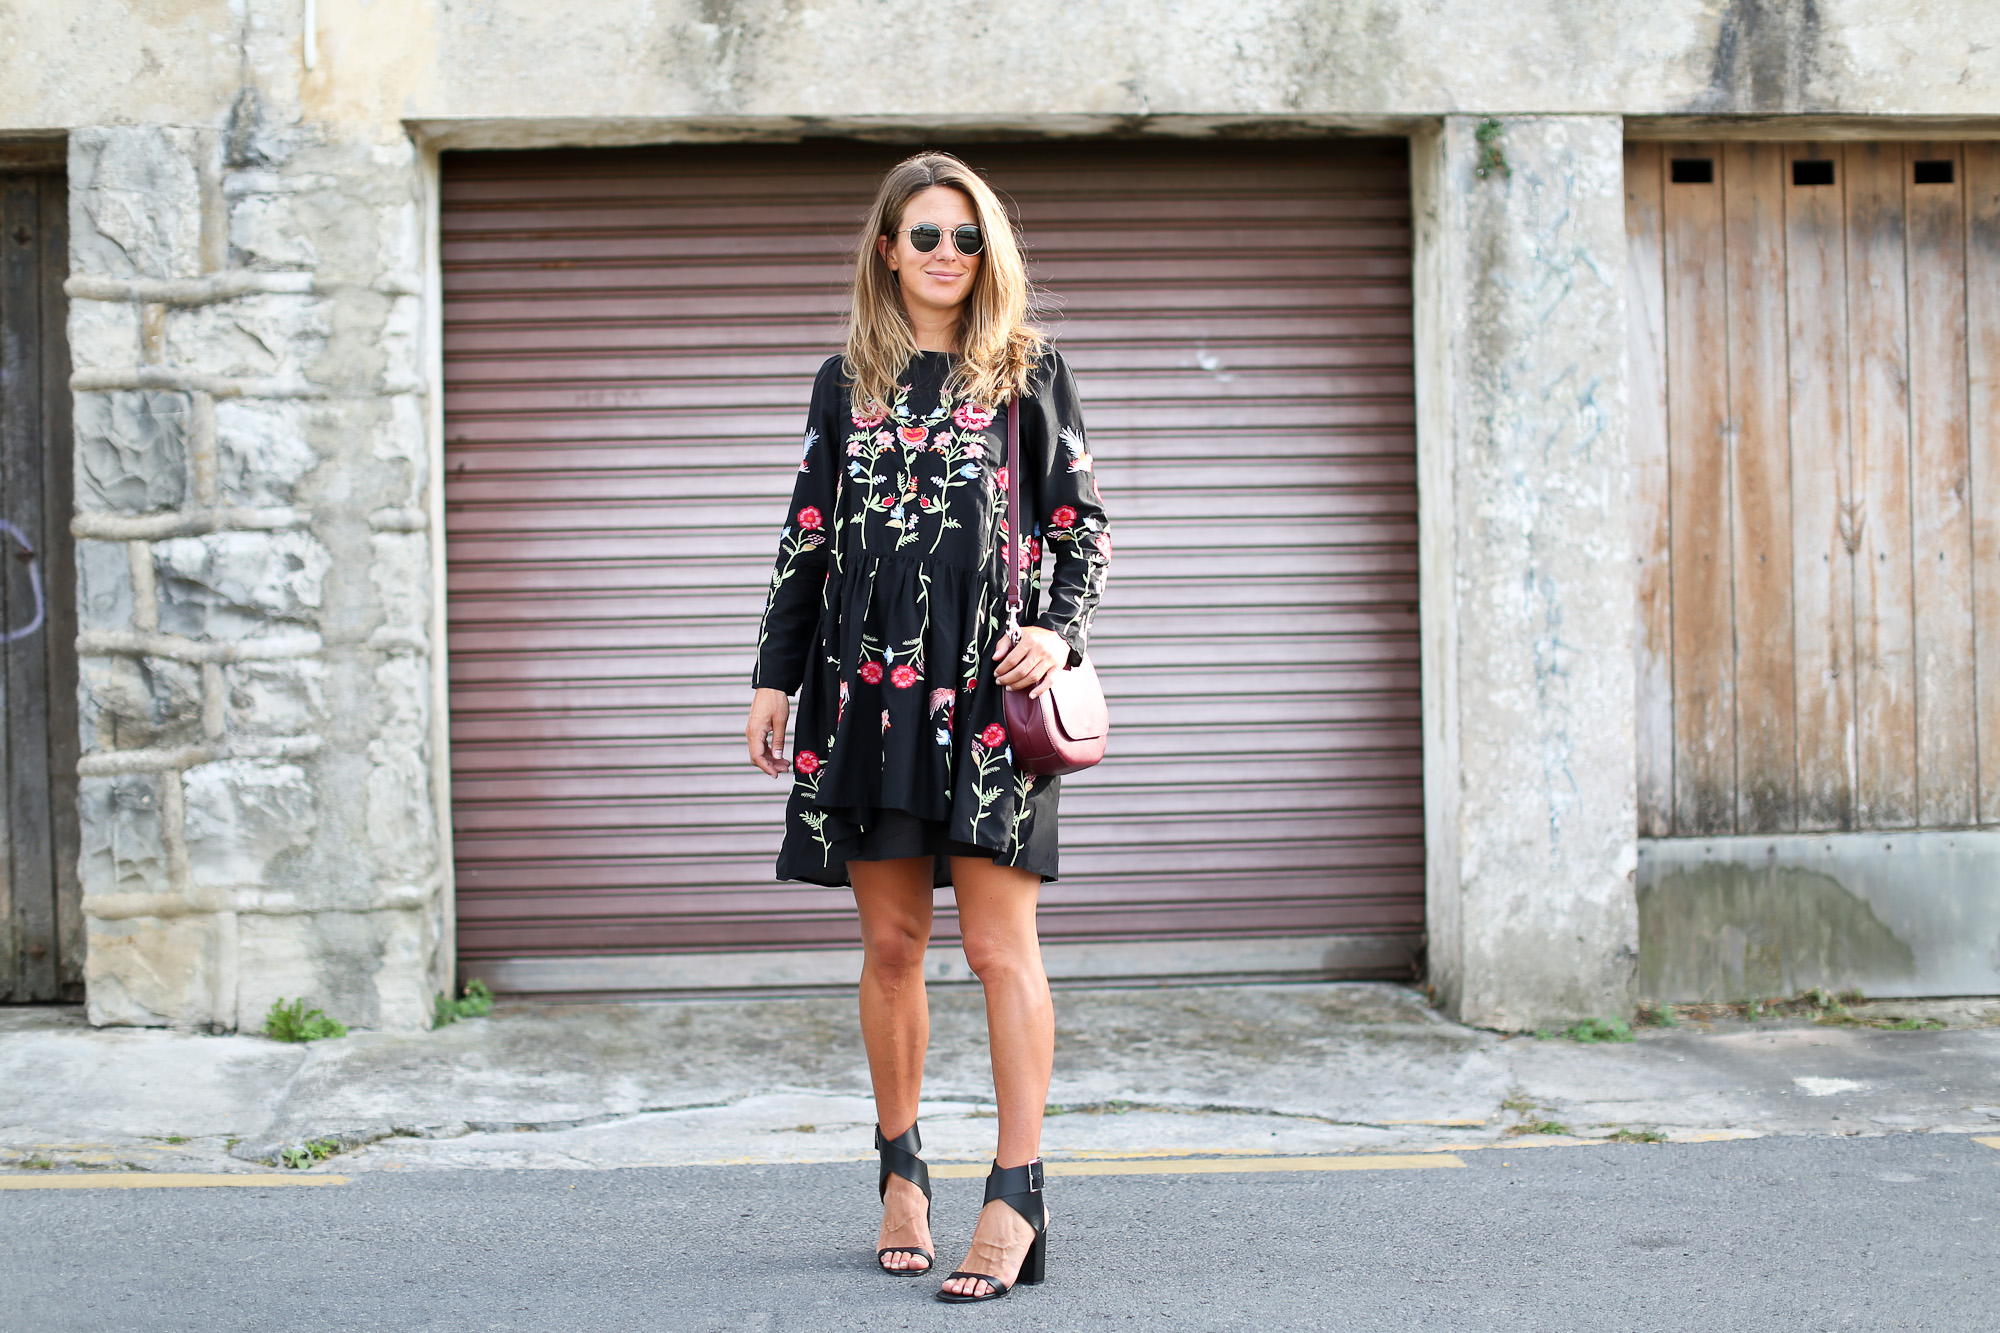 Clochet_streetstyle_zara_embroided_littleblackdress_purificaciongarcia_bandolera_westfalia-3